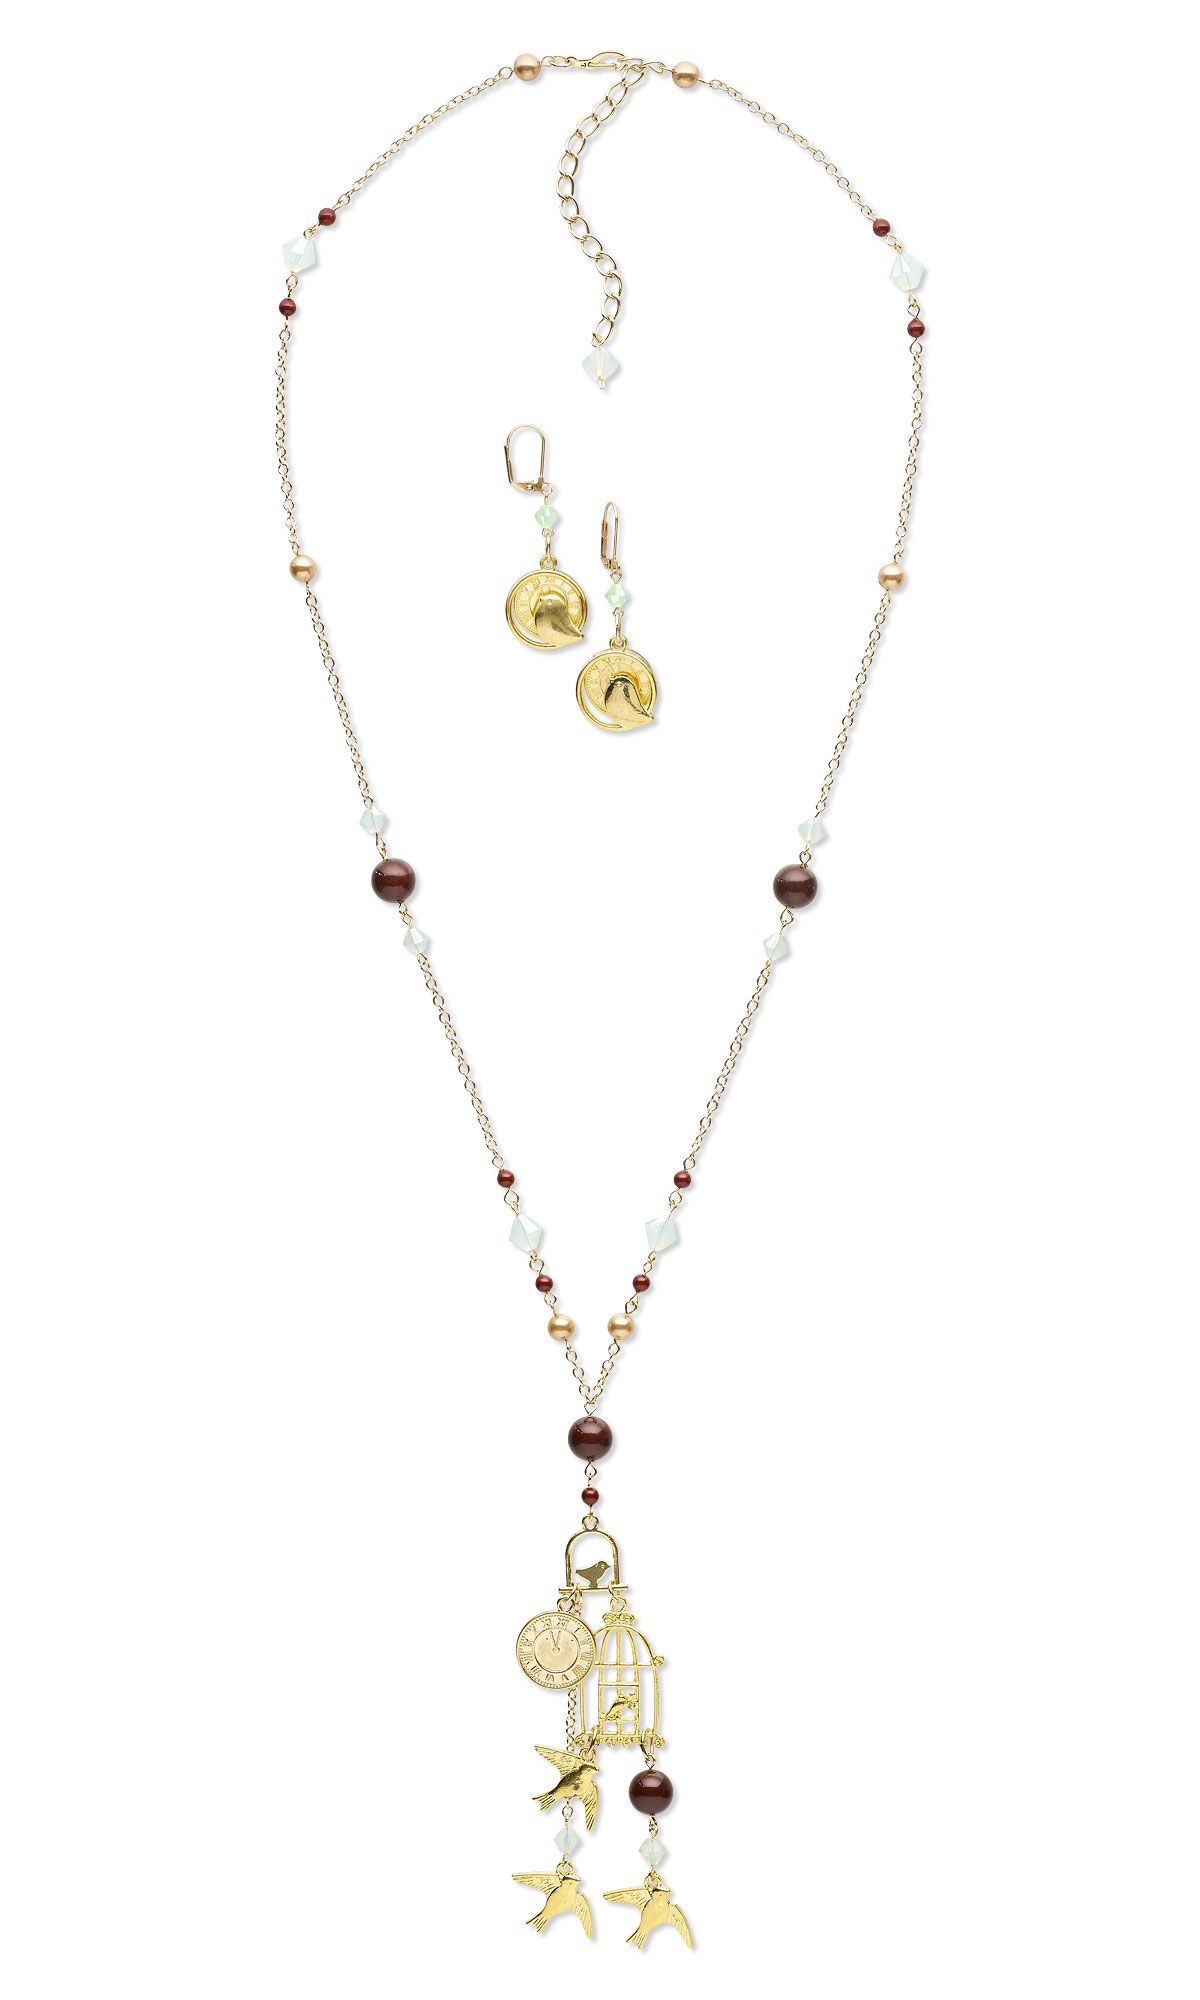 Jewelry design singlestrand necklace and earring set with gold